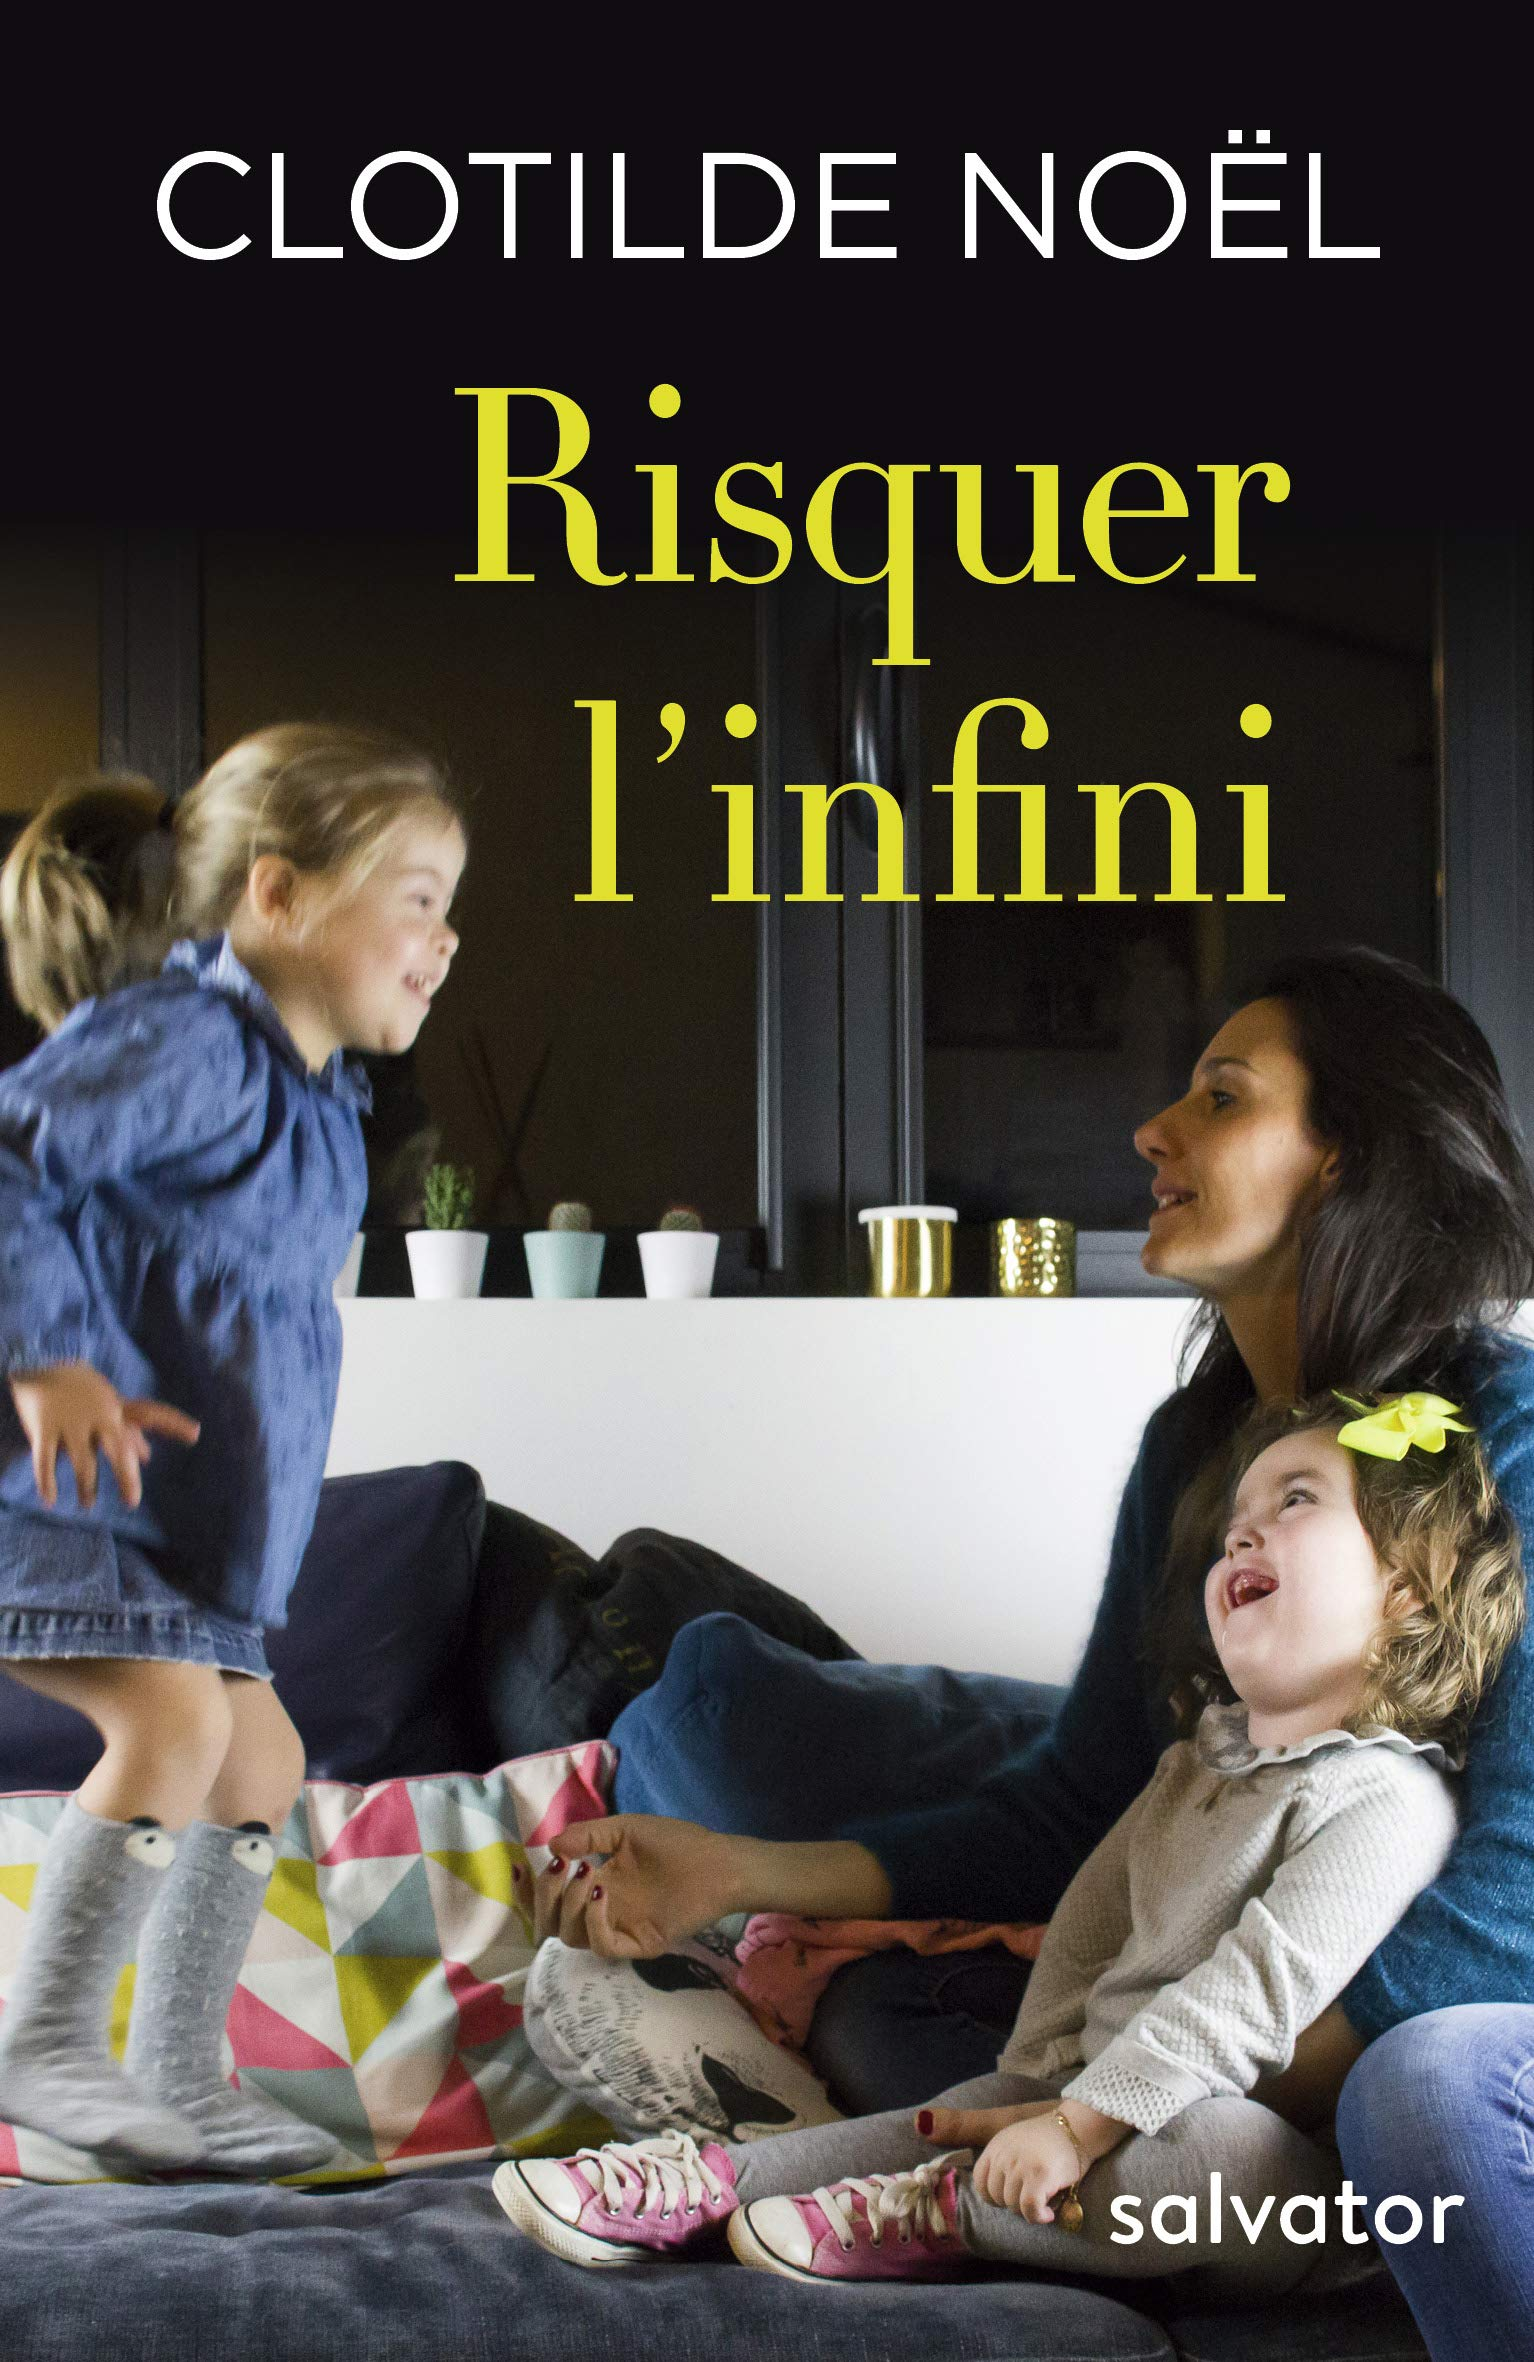 Clotilde Noel Risquer l'infini: Amazon.co.uk: Noël, Clotilde, Rougier, Stan